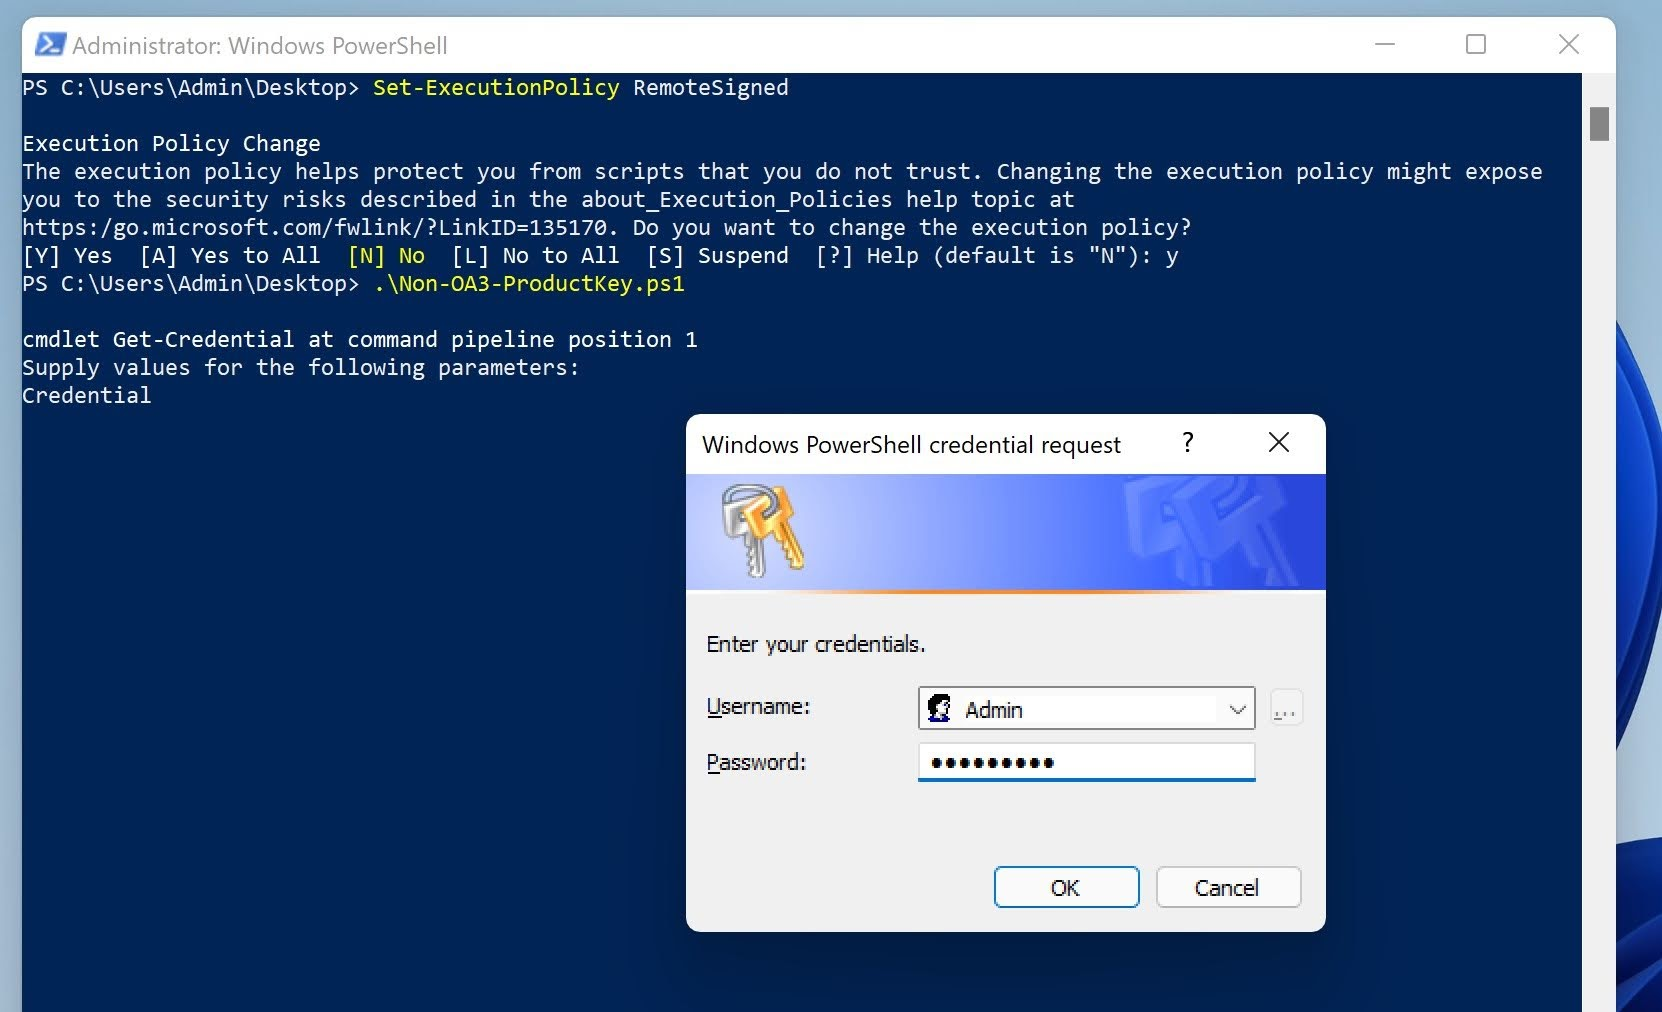 Enter the Administrator credential in Windows PowerShell credential request dialog box.